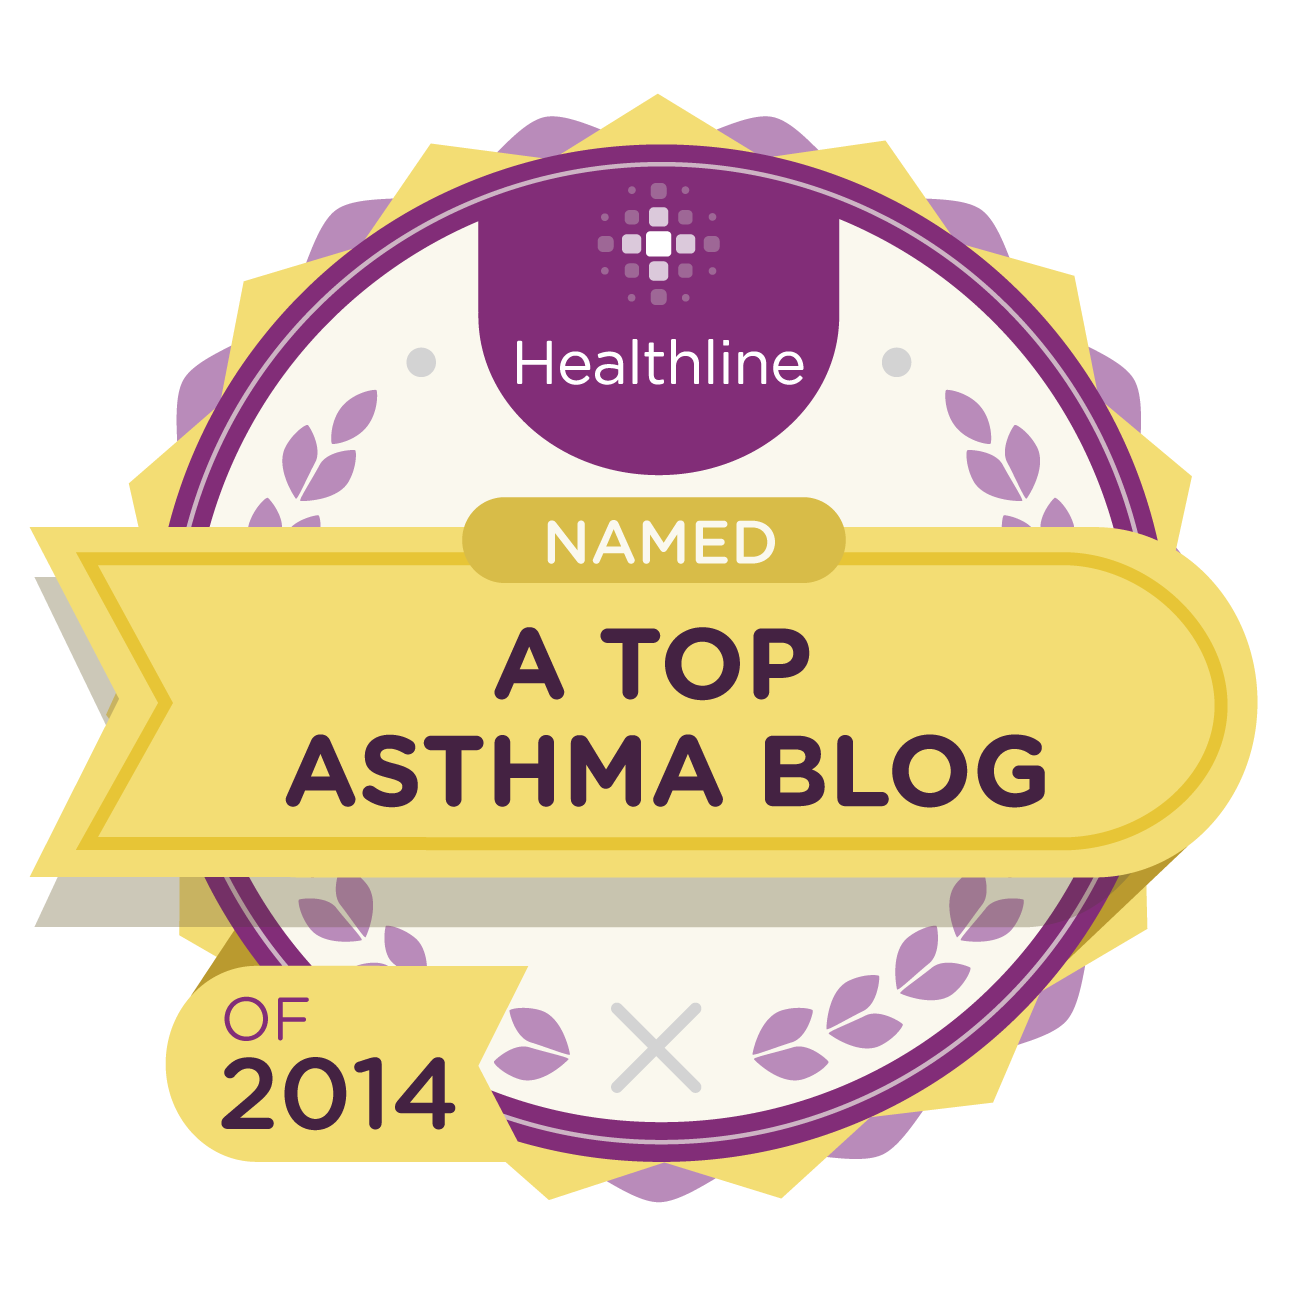 The 11 Best Asthma Health Blogs of 2014